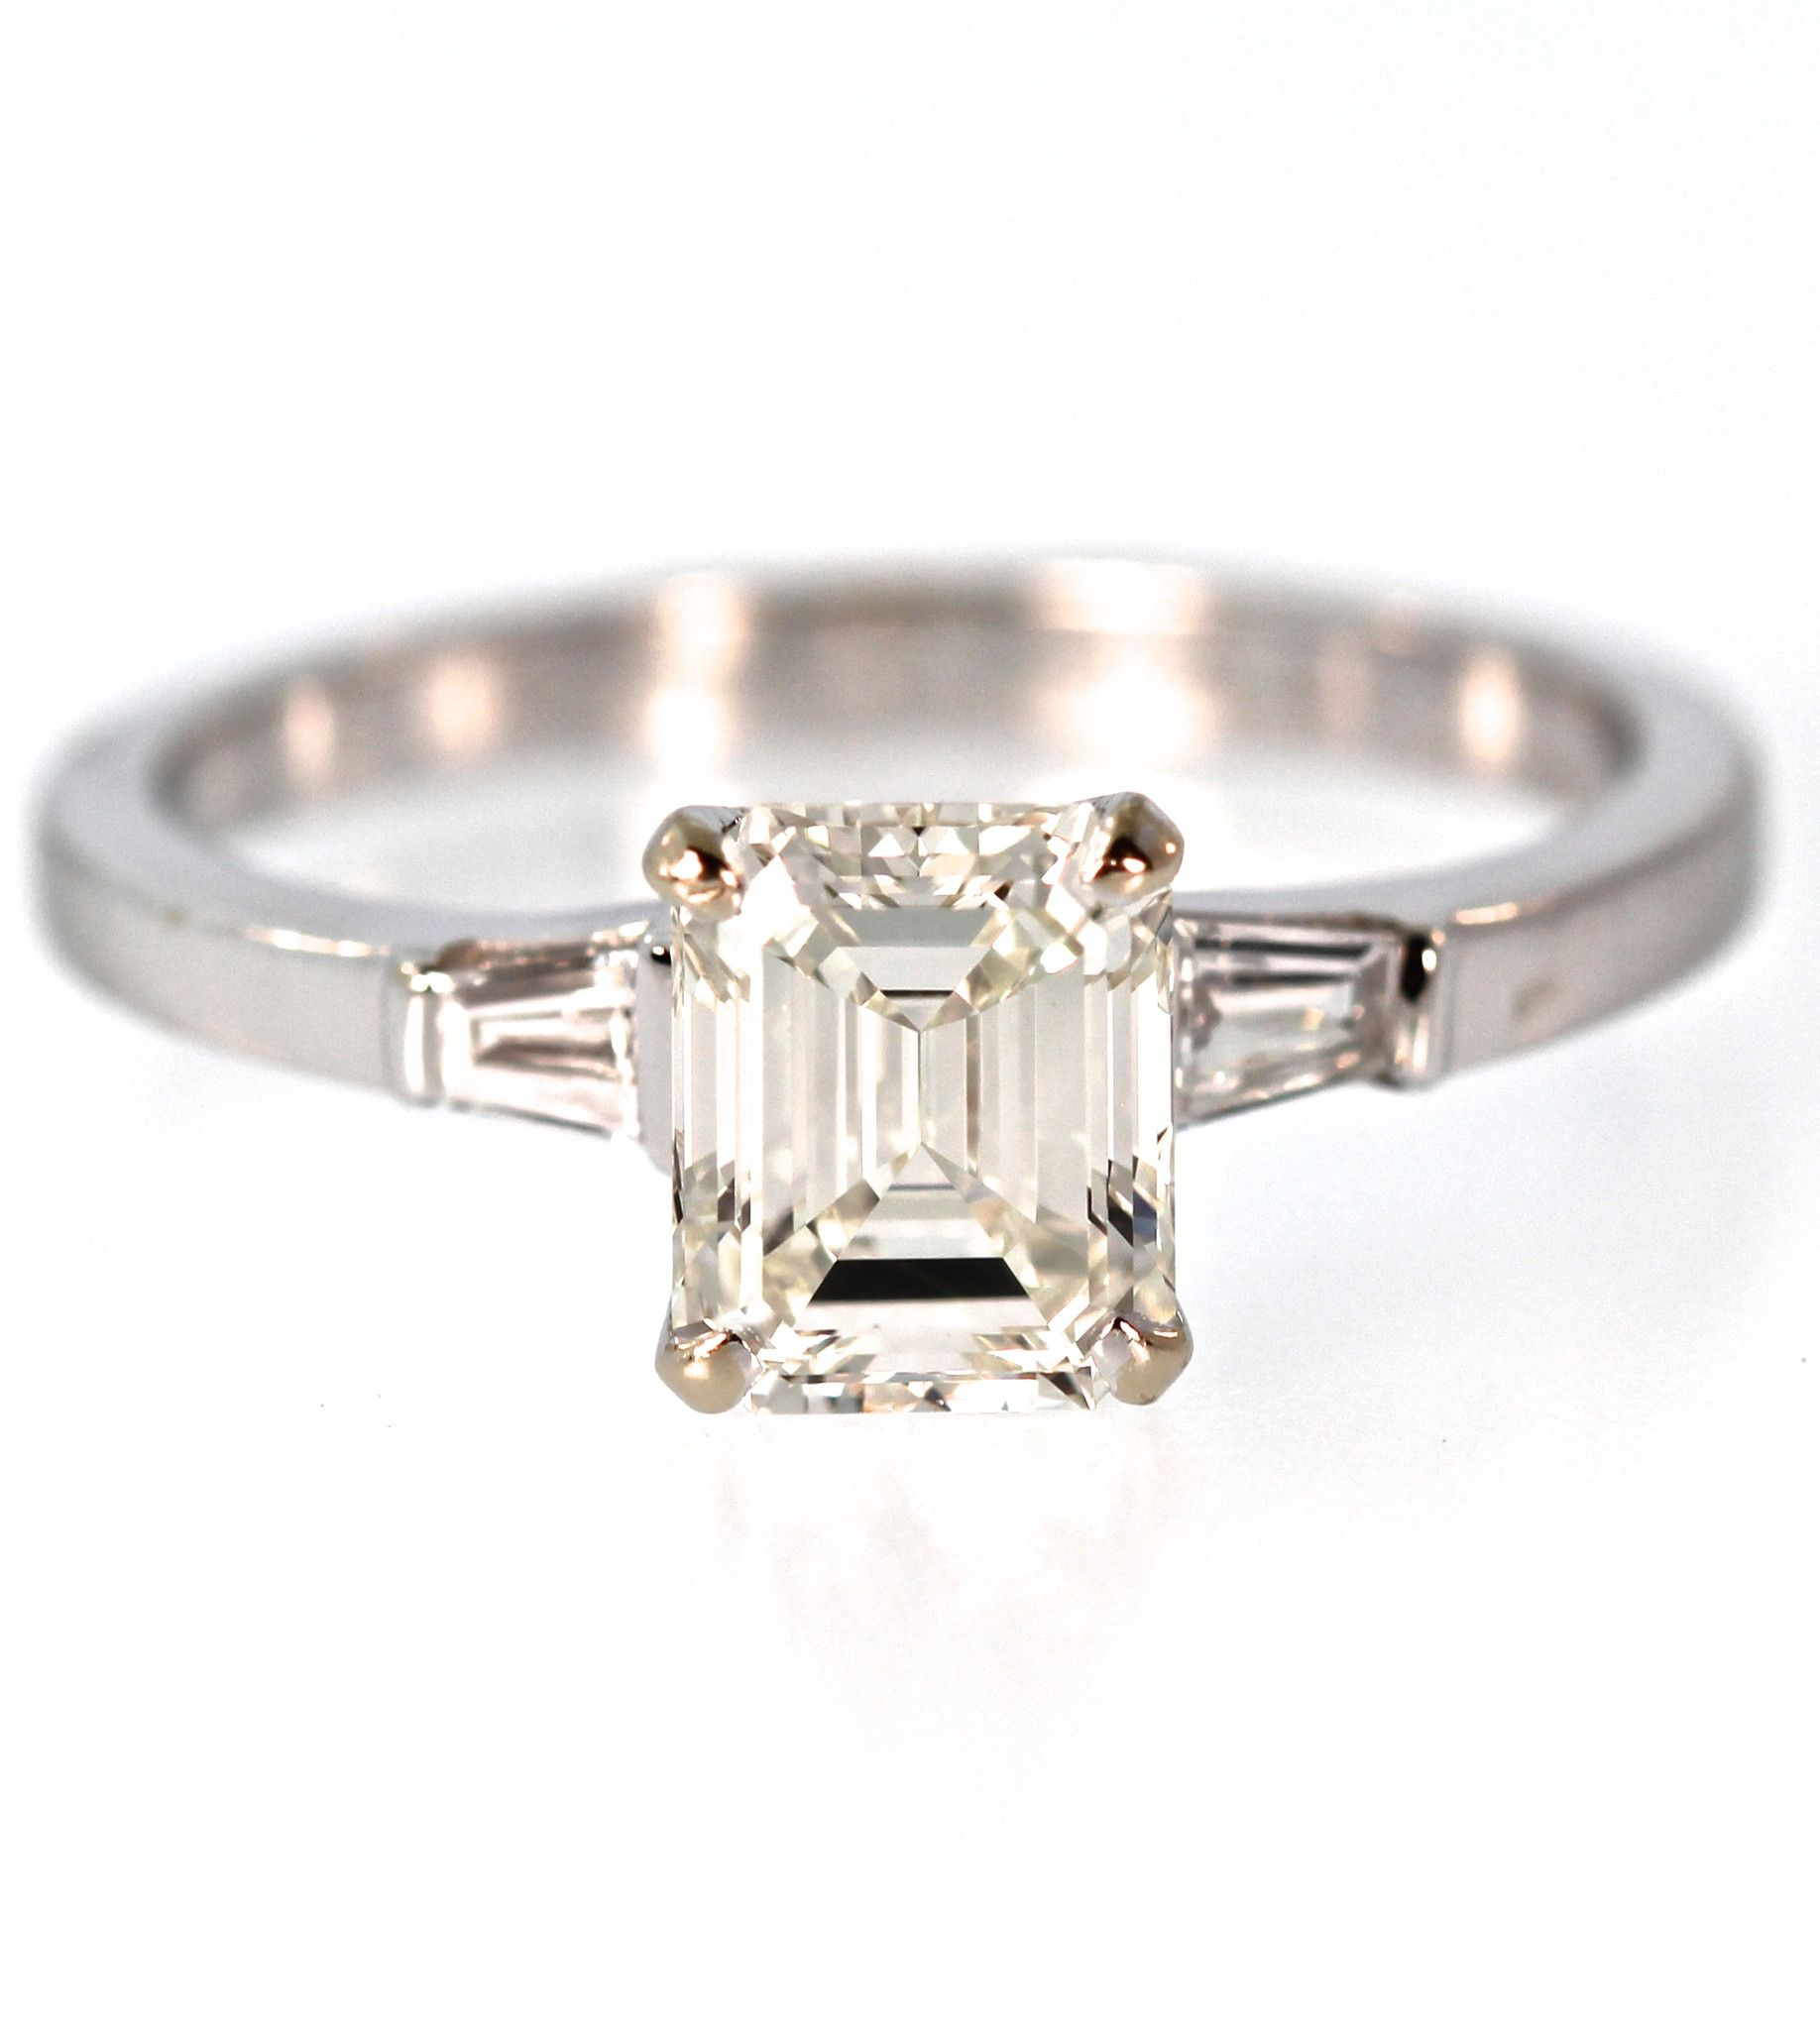 Set in a three stone 18k mounting with tapered baguettes is a